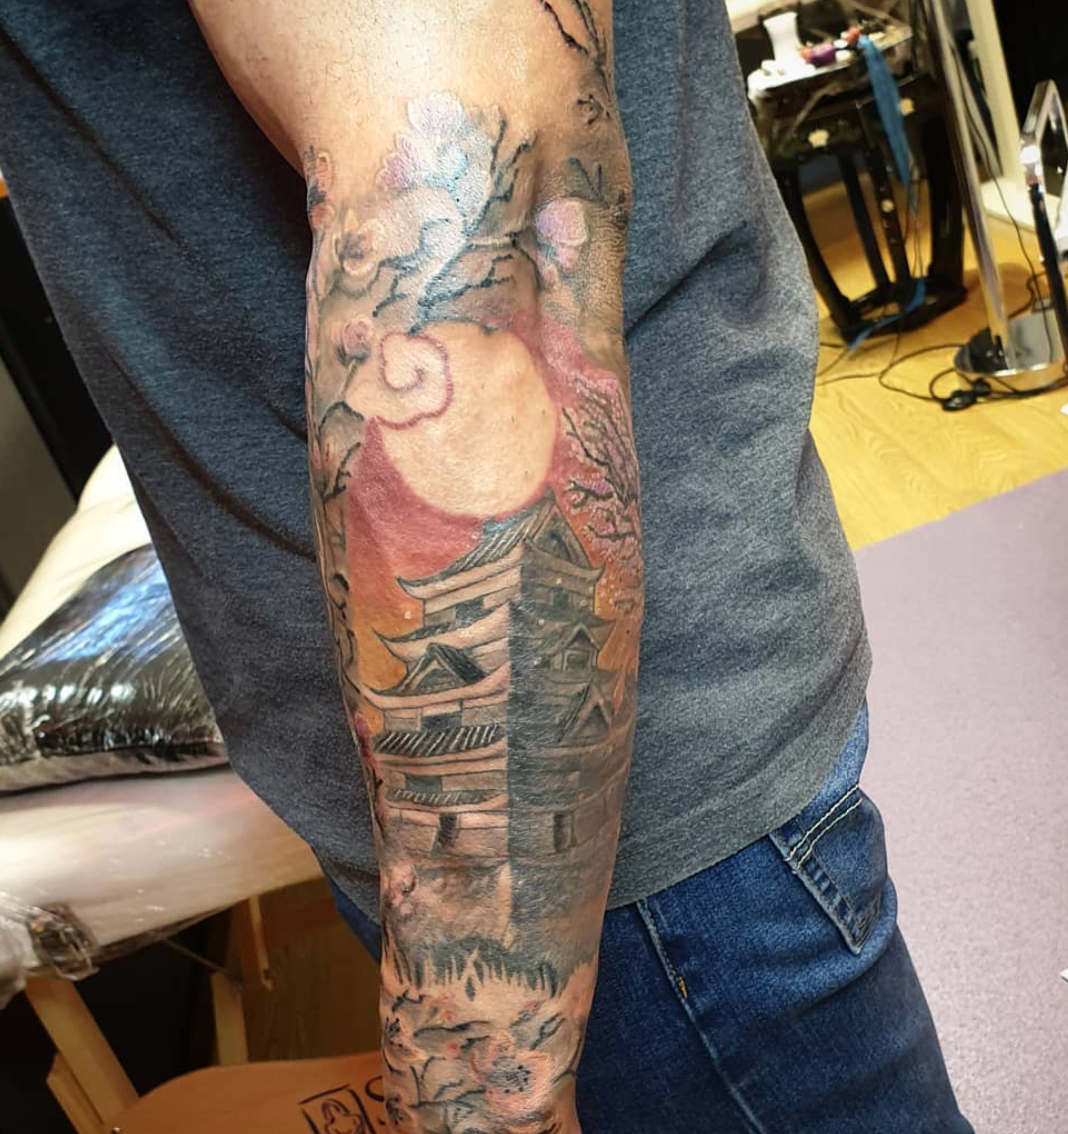 daomey-london-tattoo-ross-japanese-temple-ink